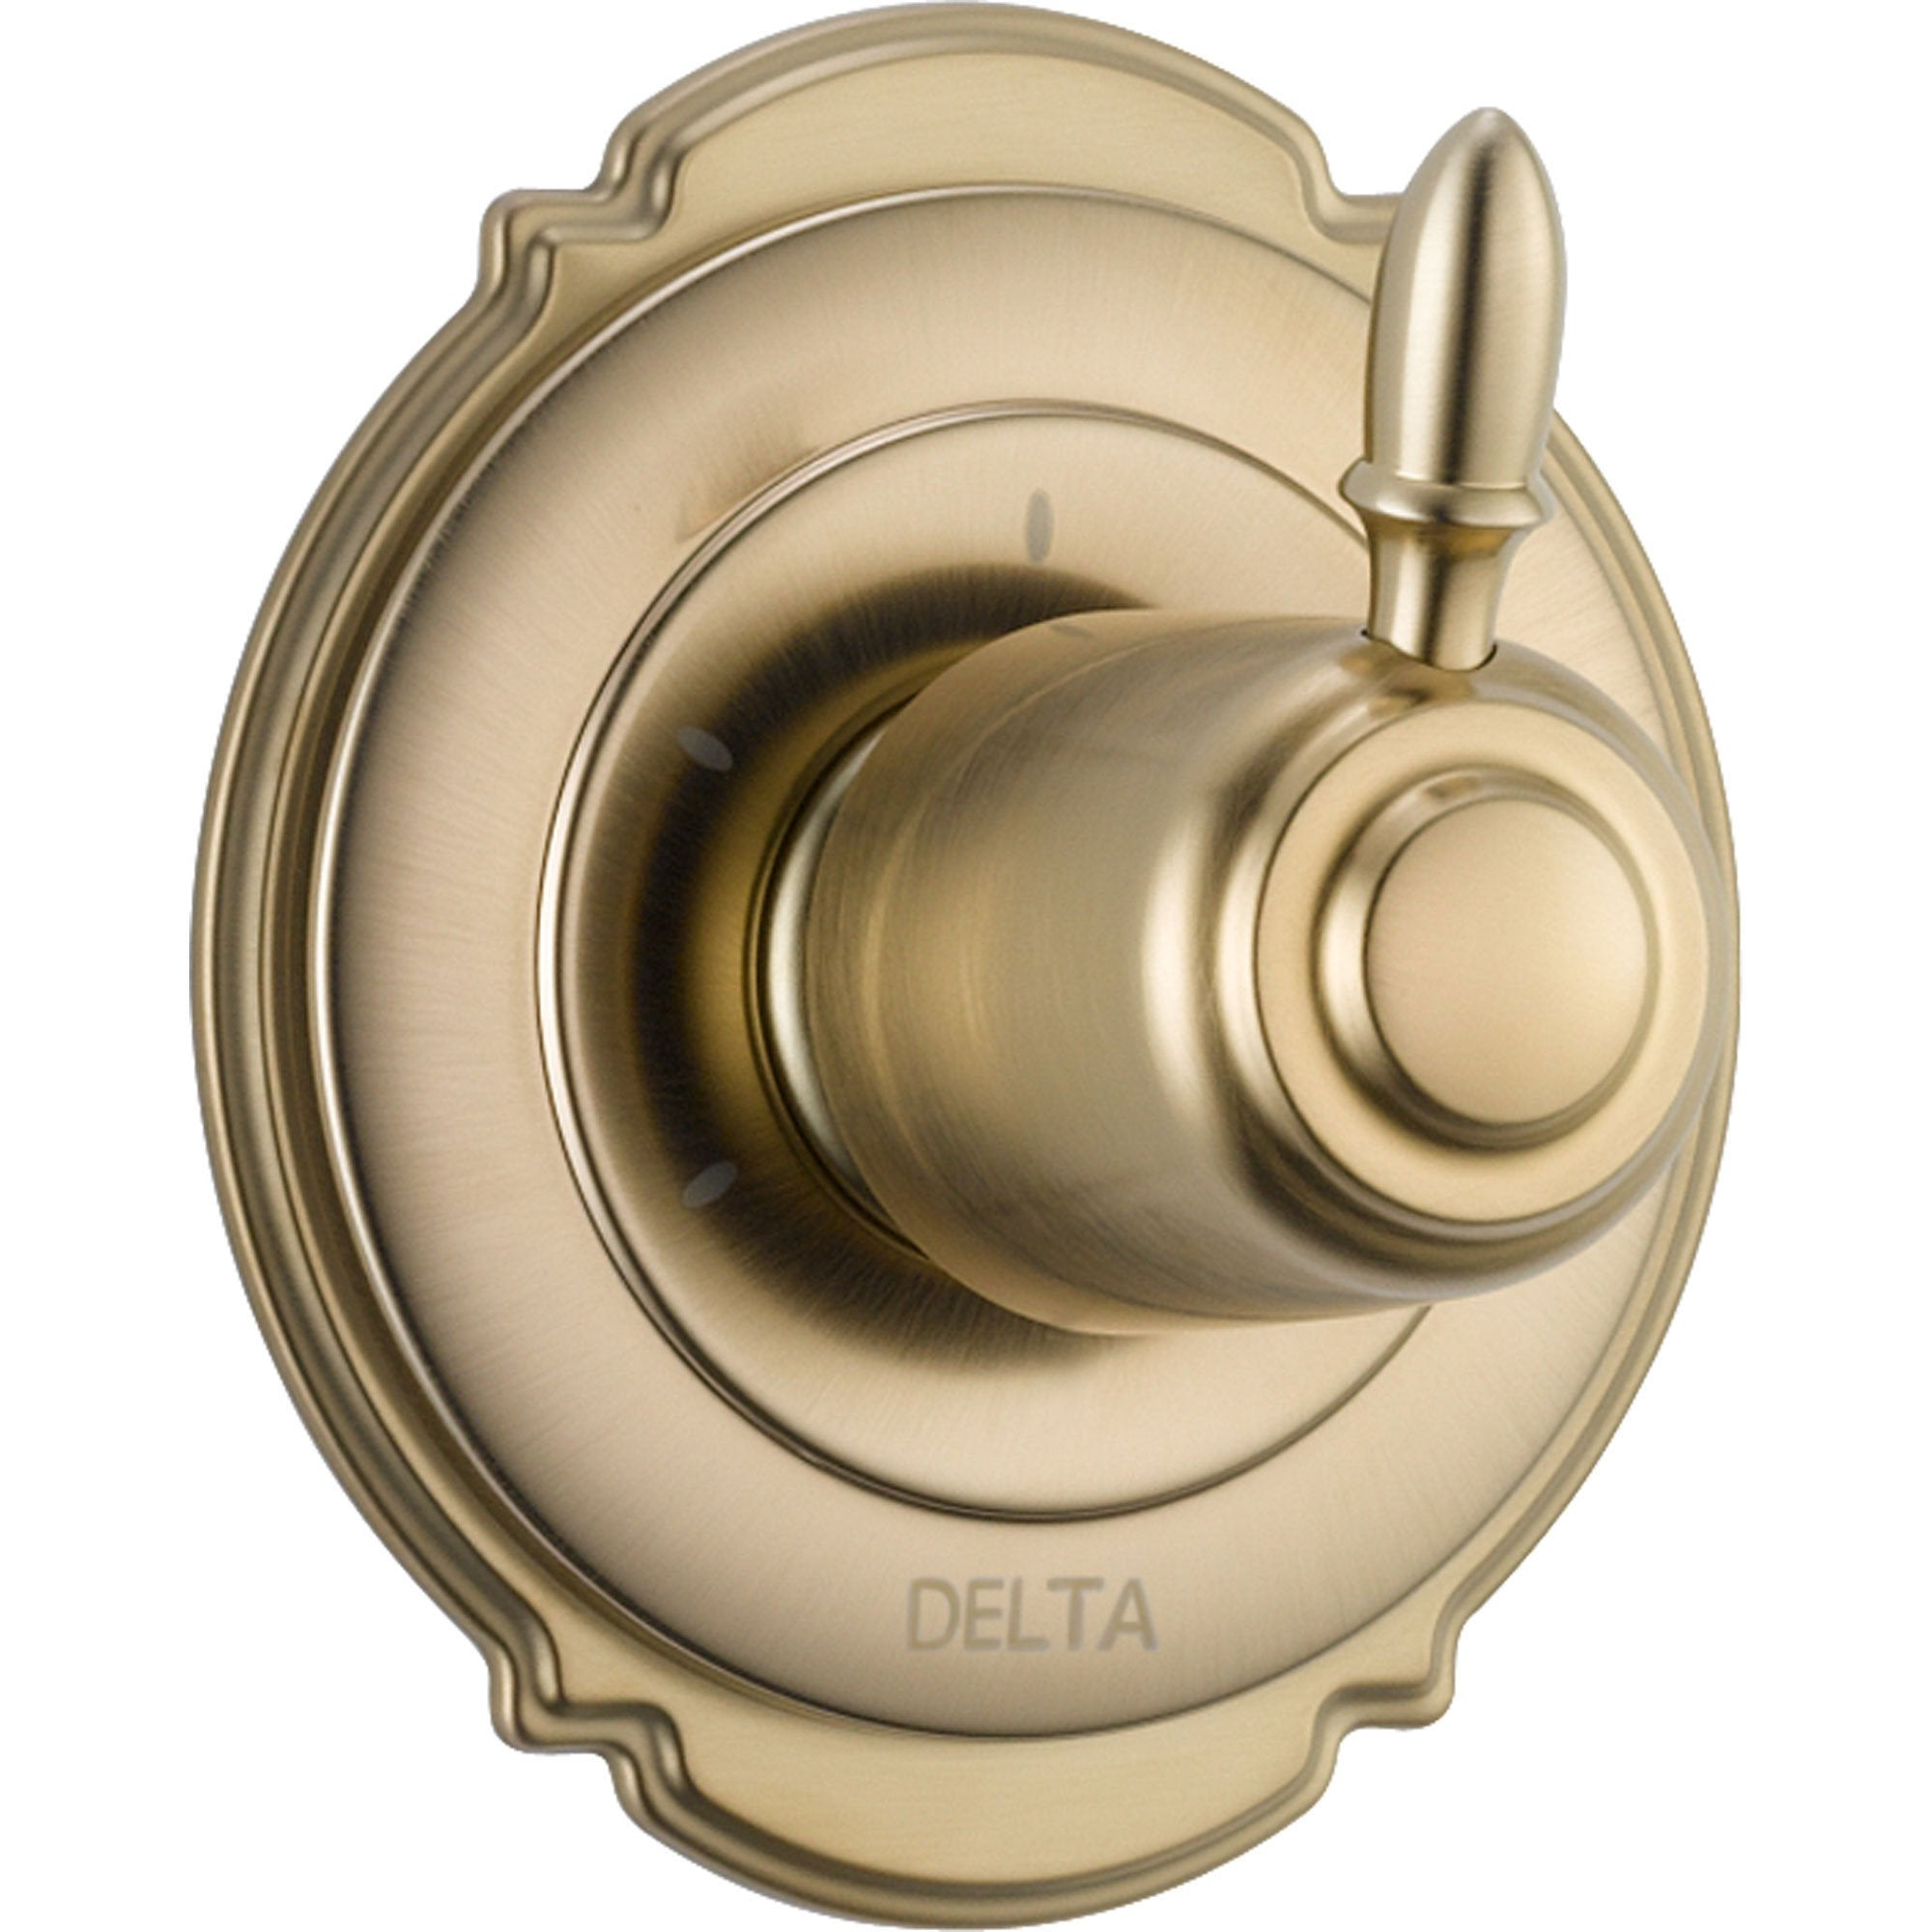 Delta Victorian 3-Setting Champagne Bronze 1-Handle Shower Diverter Trim 563246